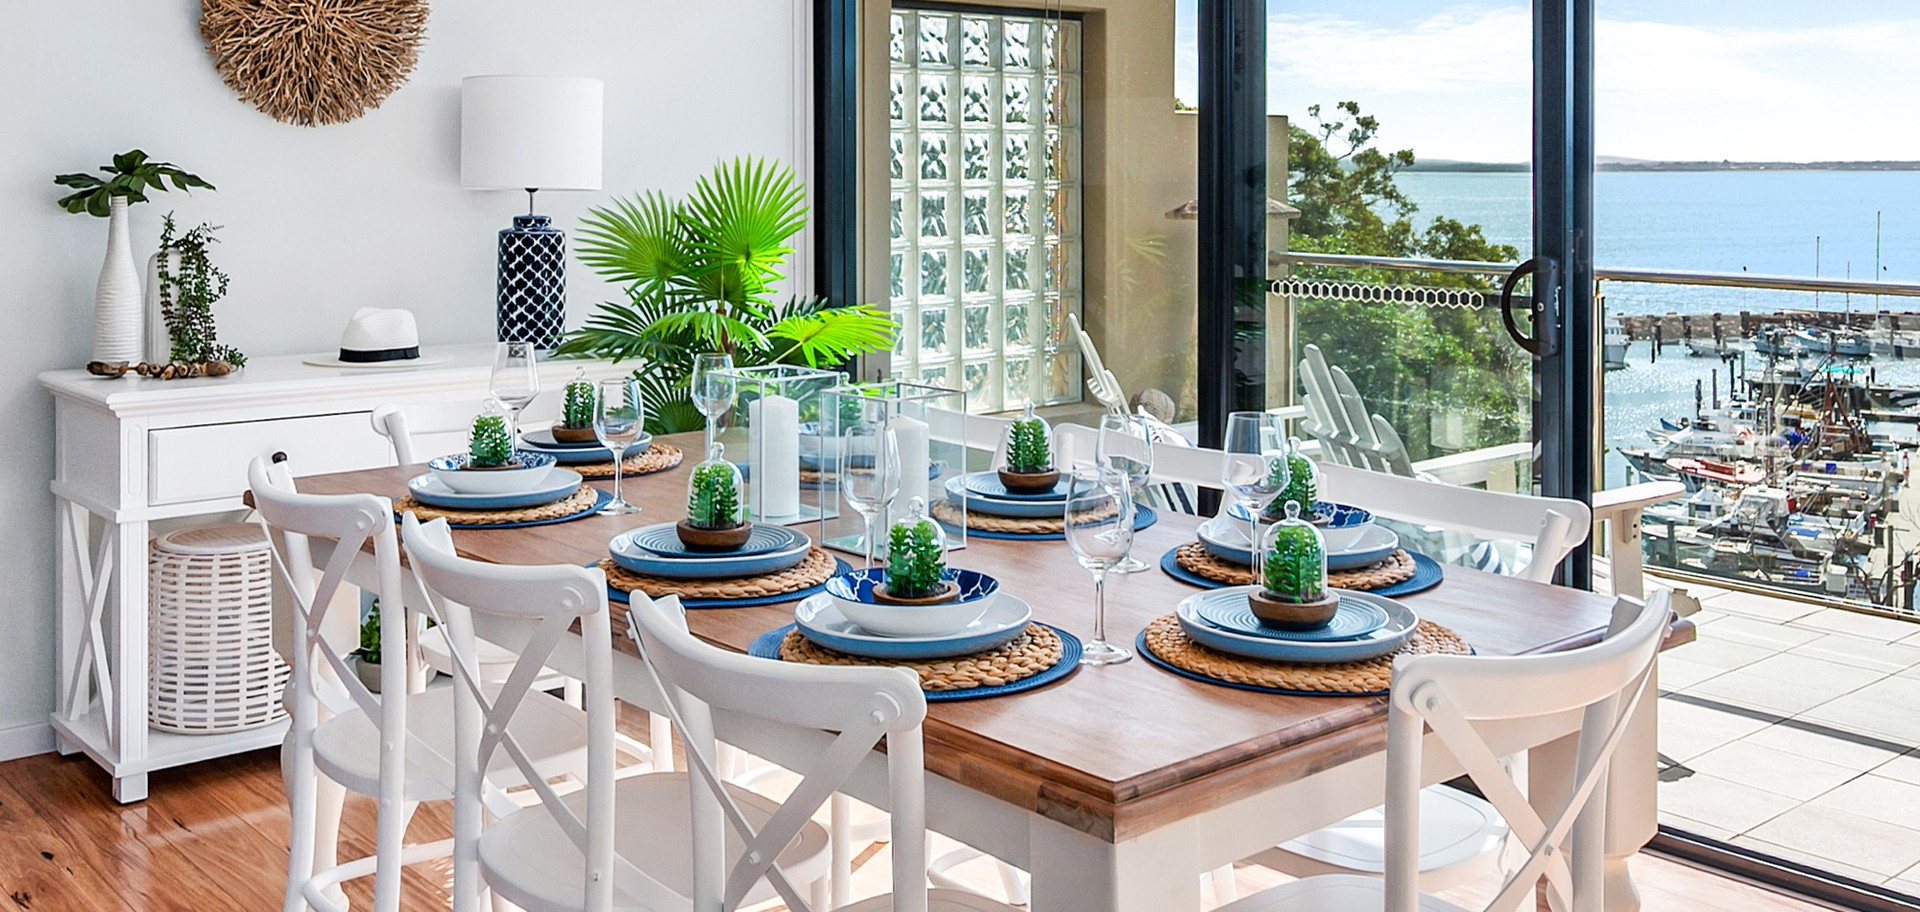 Dining table full setting Nelson Bay